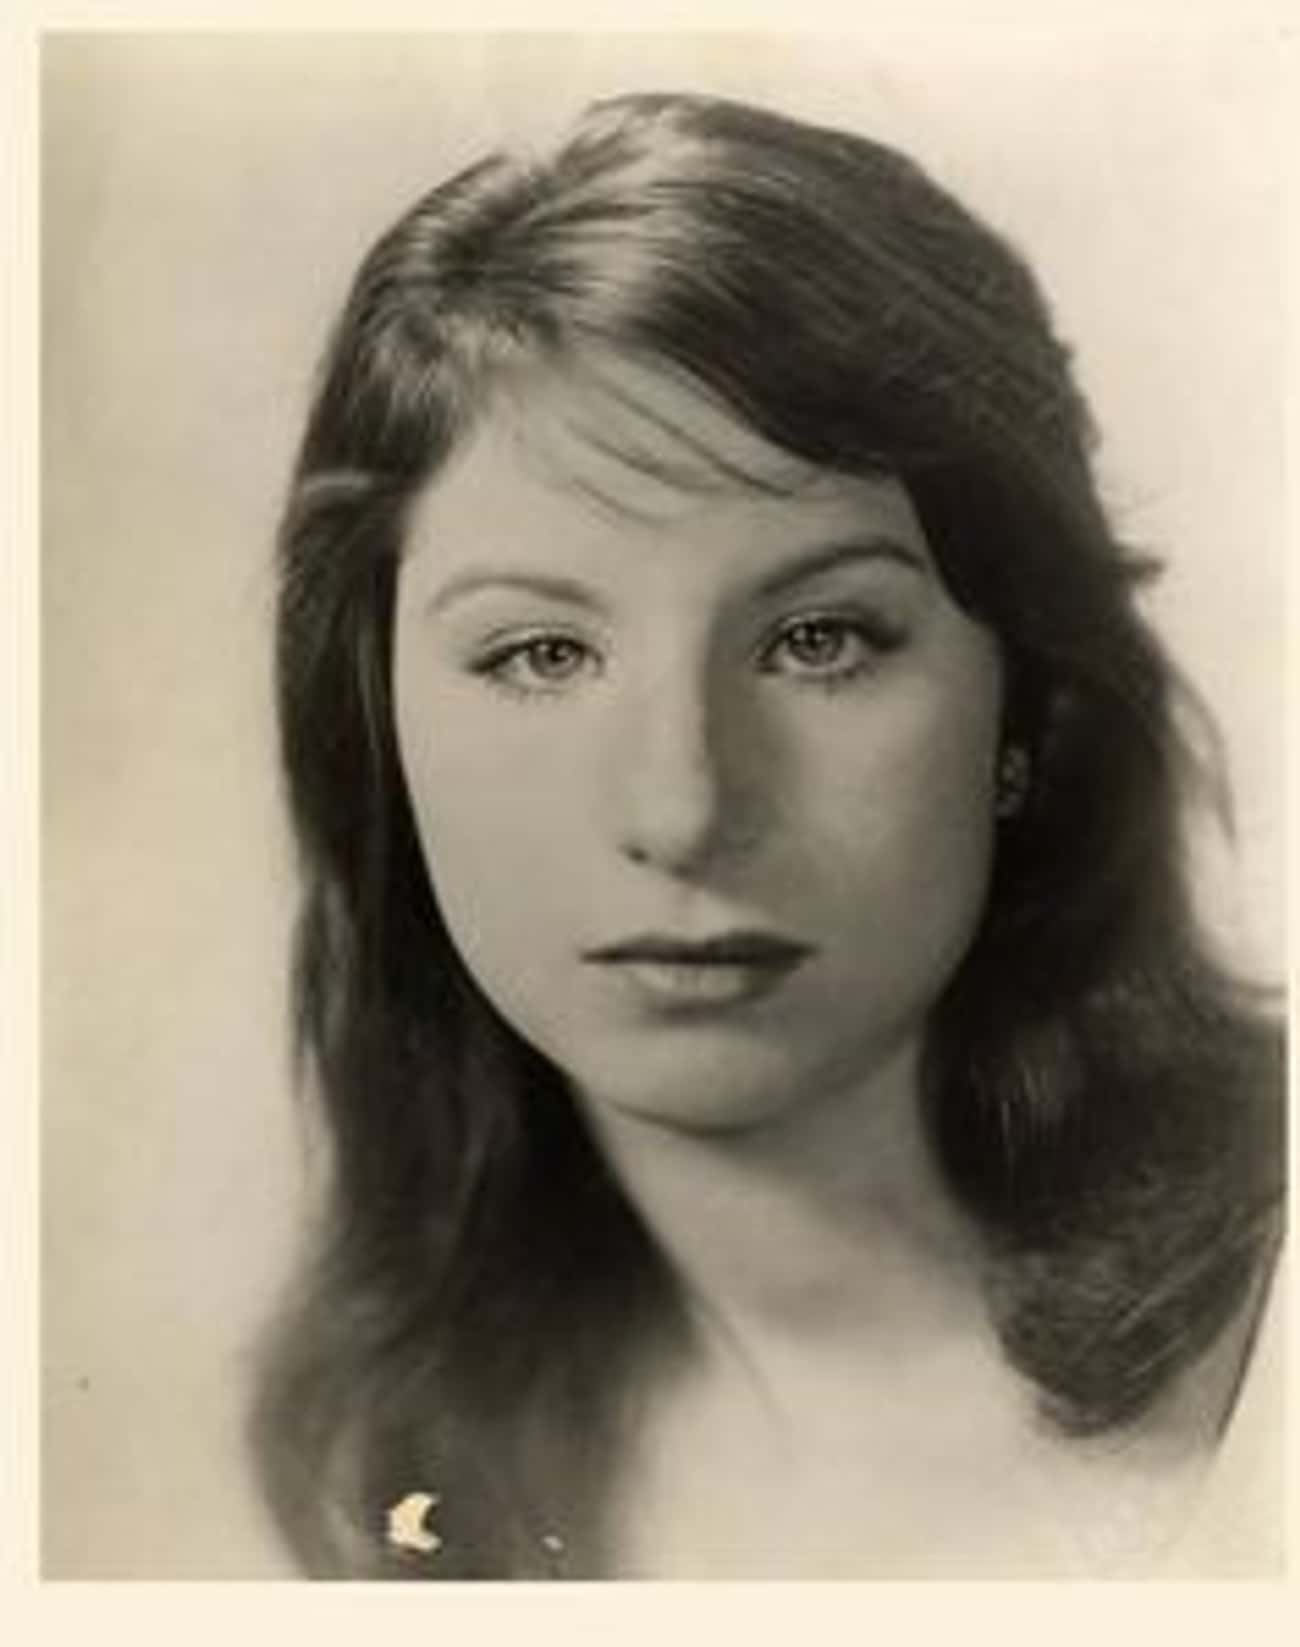 Young Barbra Streisand High Sc is listed (or ranked) 1 on the list 20 Pictures of Young Barbra Streisand